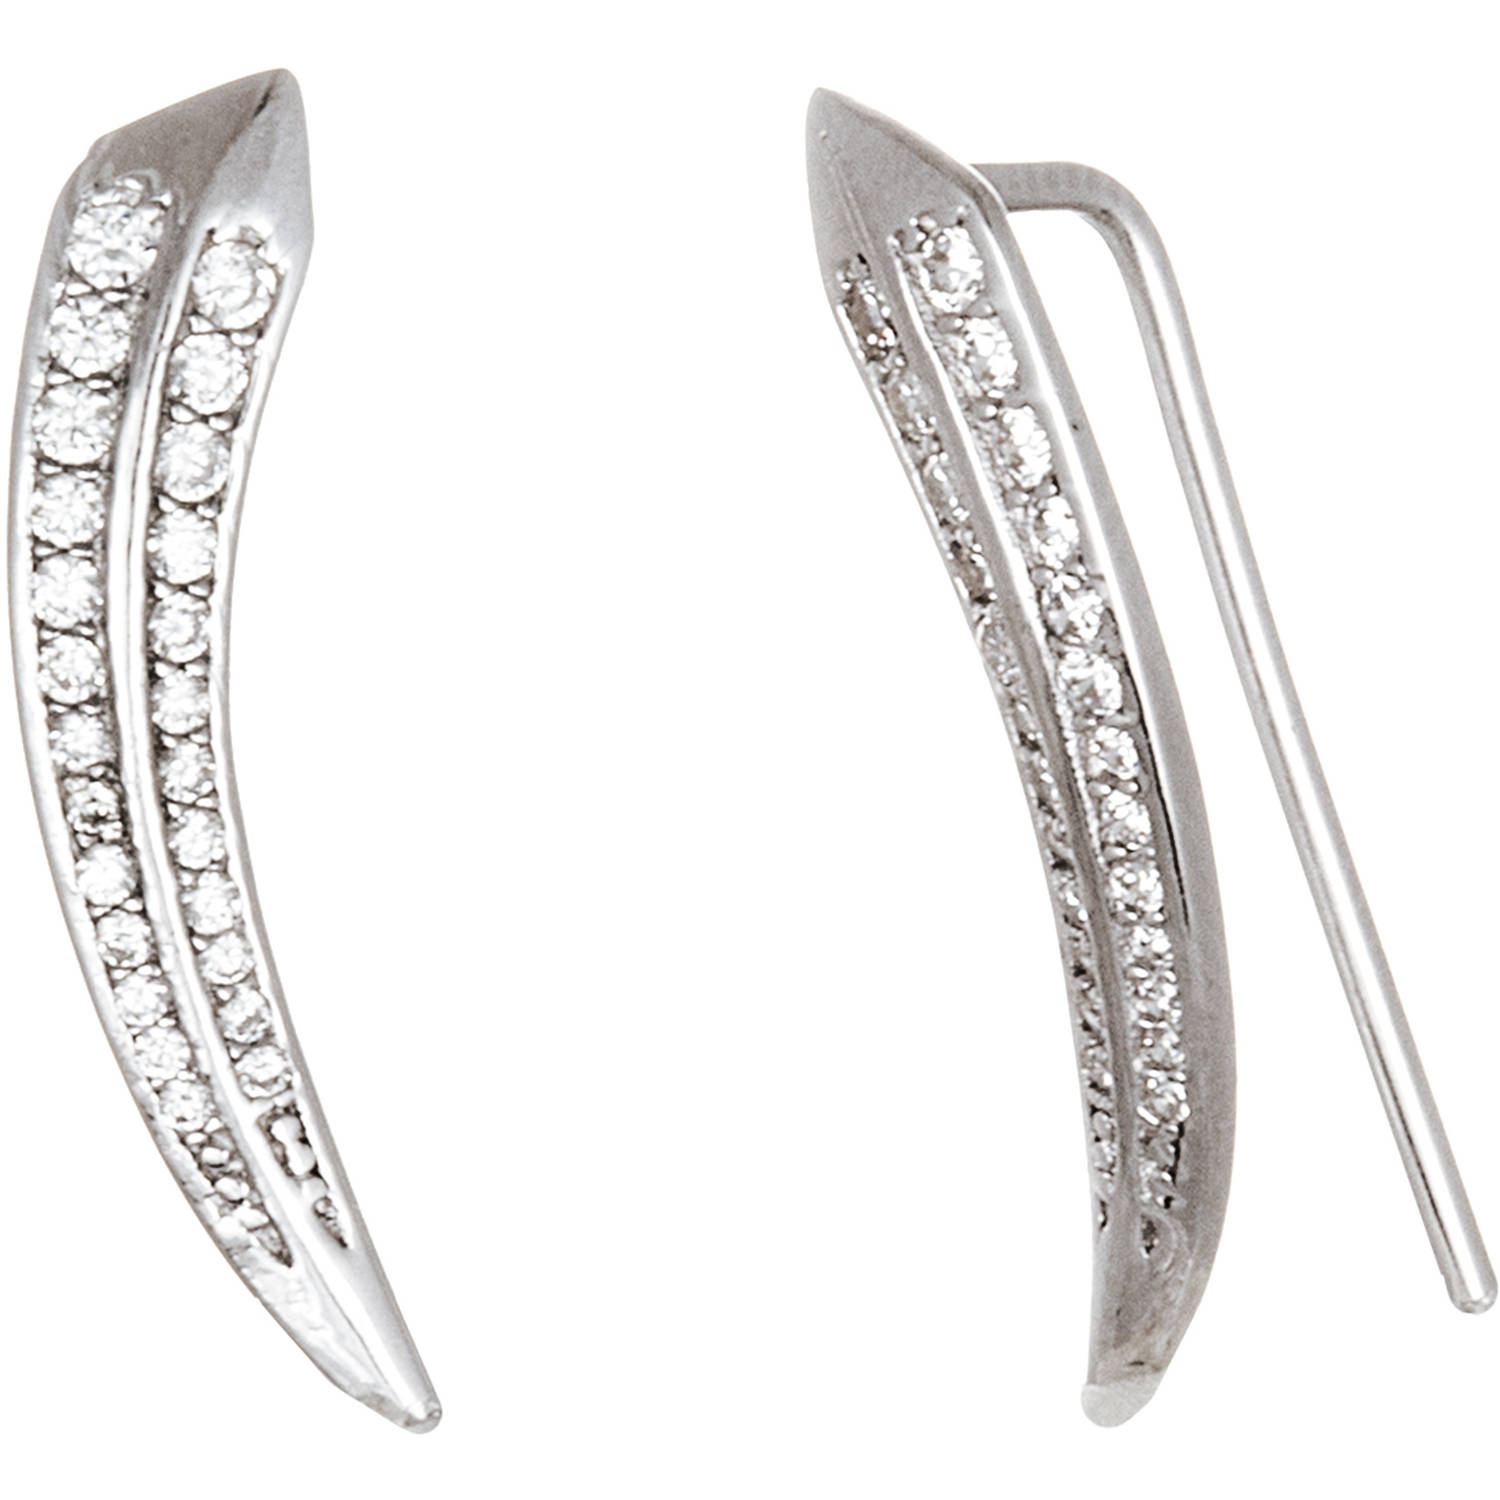 Lesa Michele Cubic Zirconia Sterling Silver Curved Bar Climber Earrings